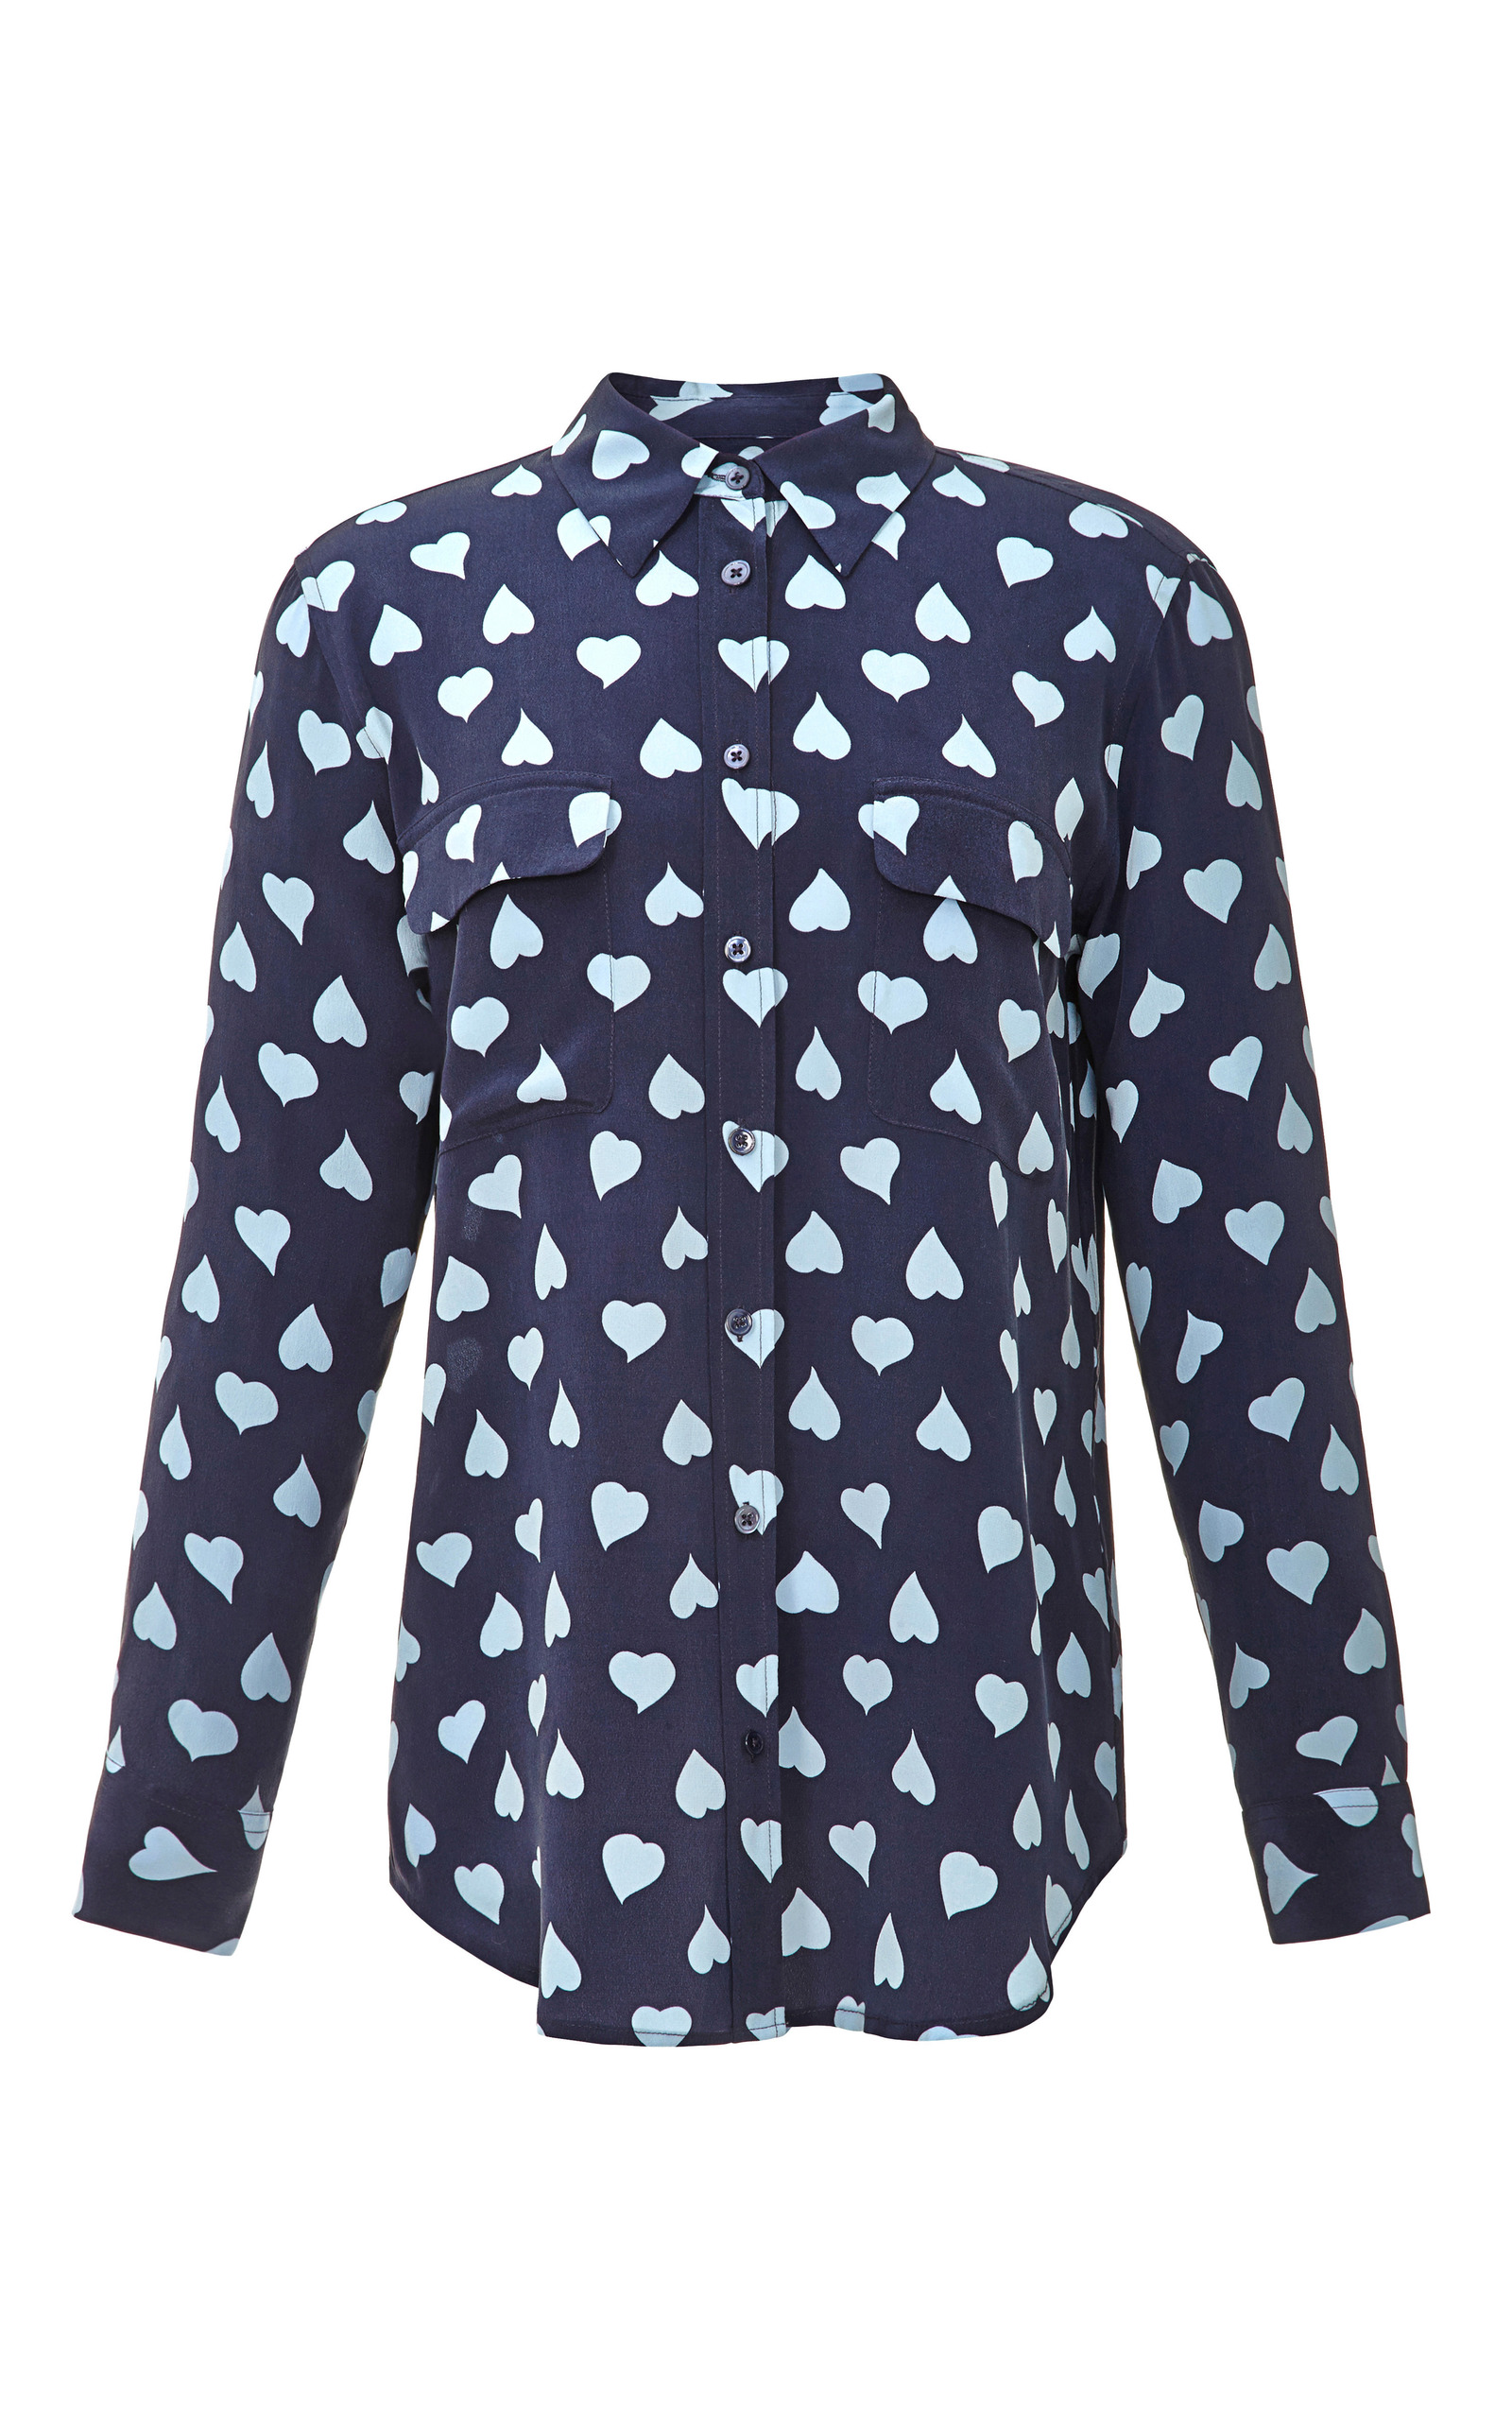 038dc7074ce9e Signature Heart-Print Washed-Silk Shirt by Equipment